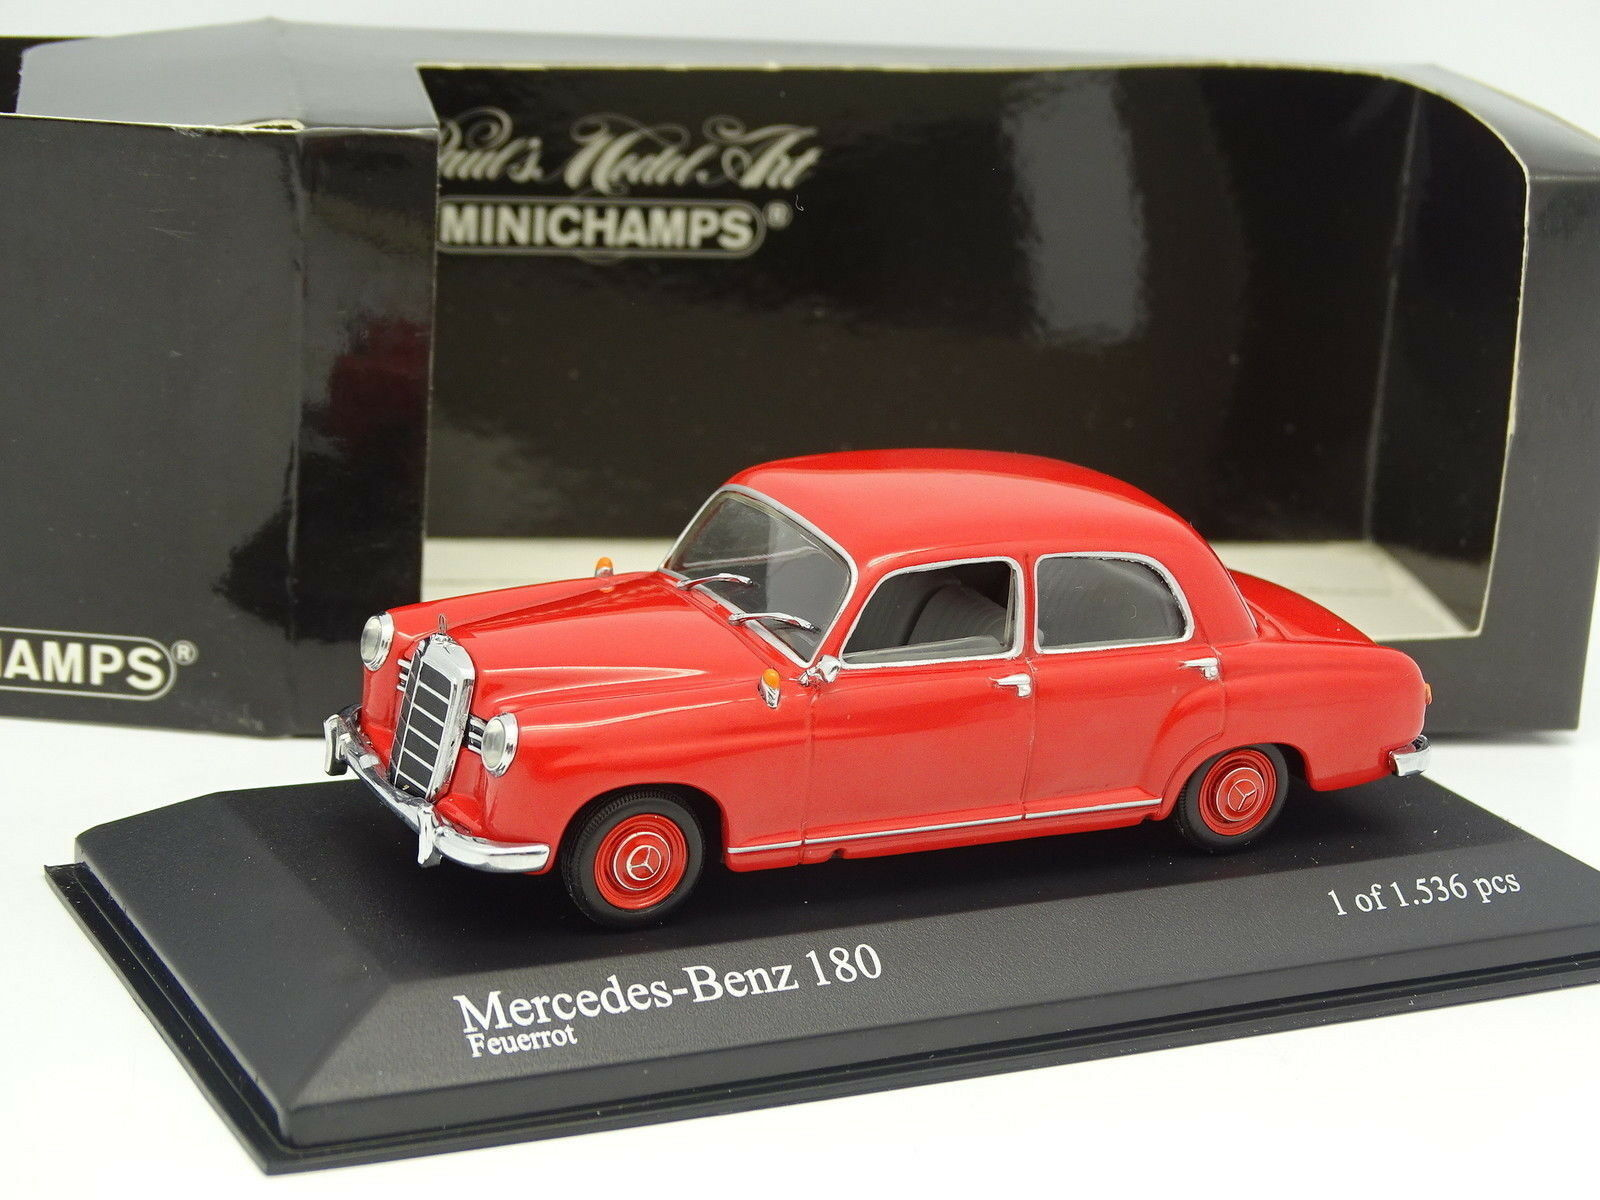 Minichamps 1 43 - Mercedes 180 W120 W120 W120 Red 1953 77d543